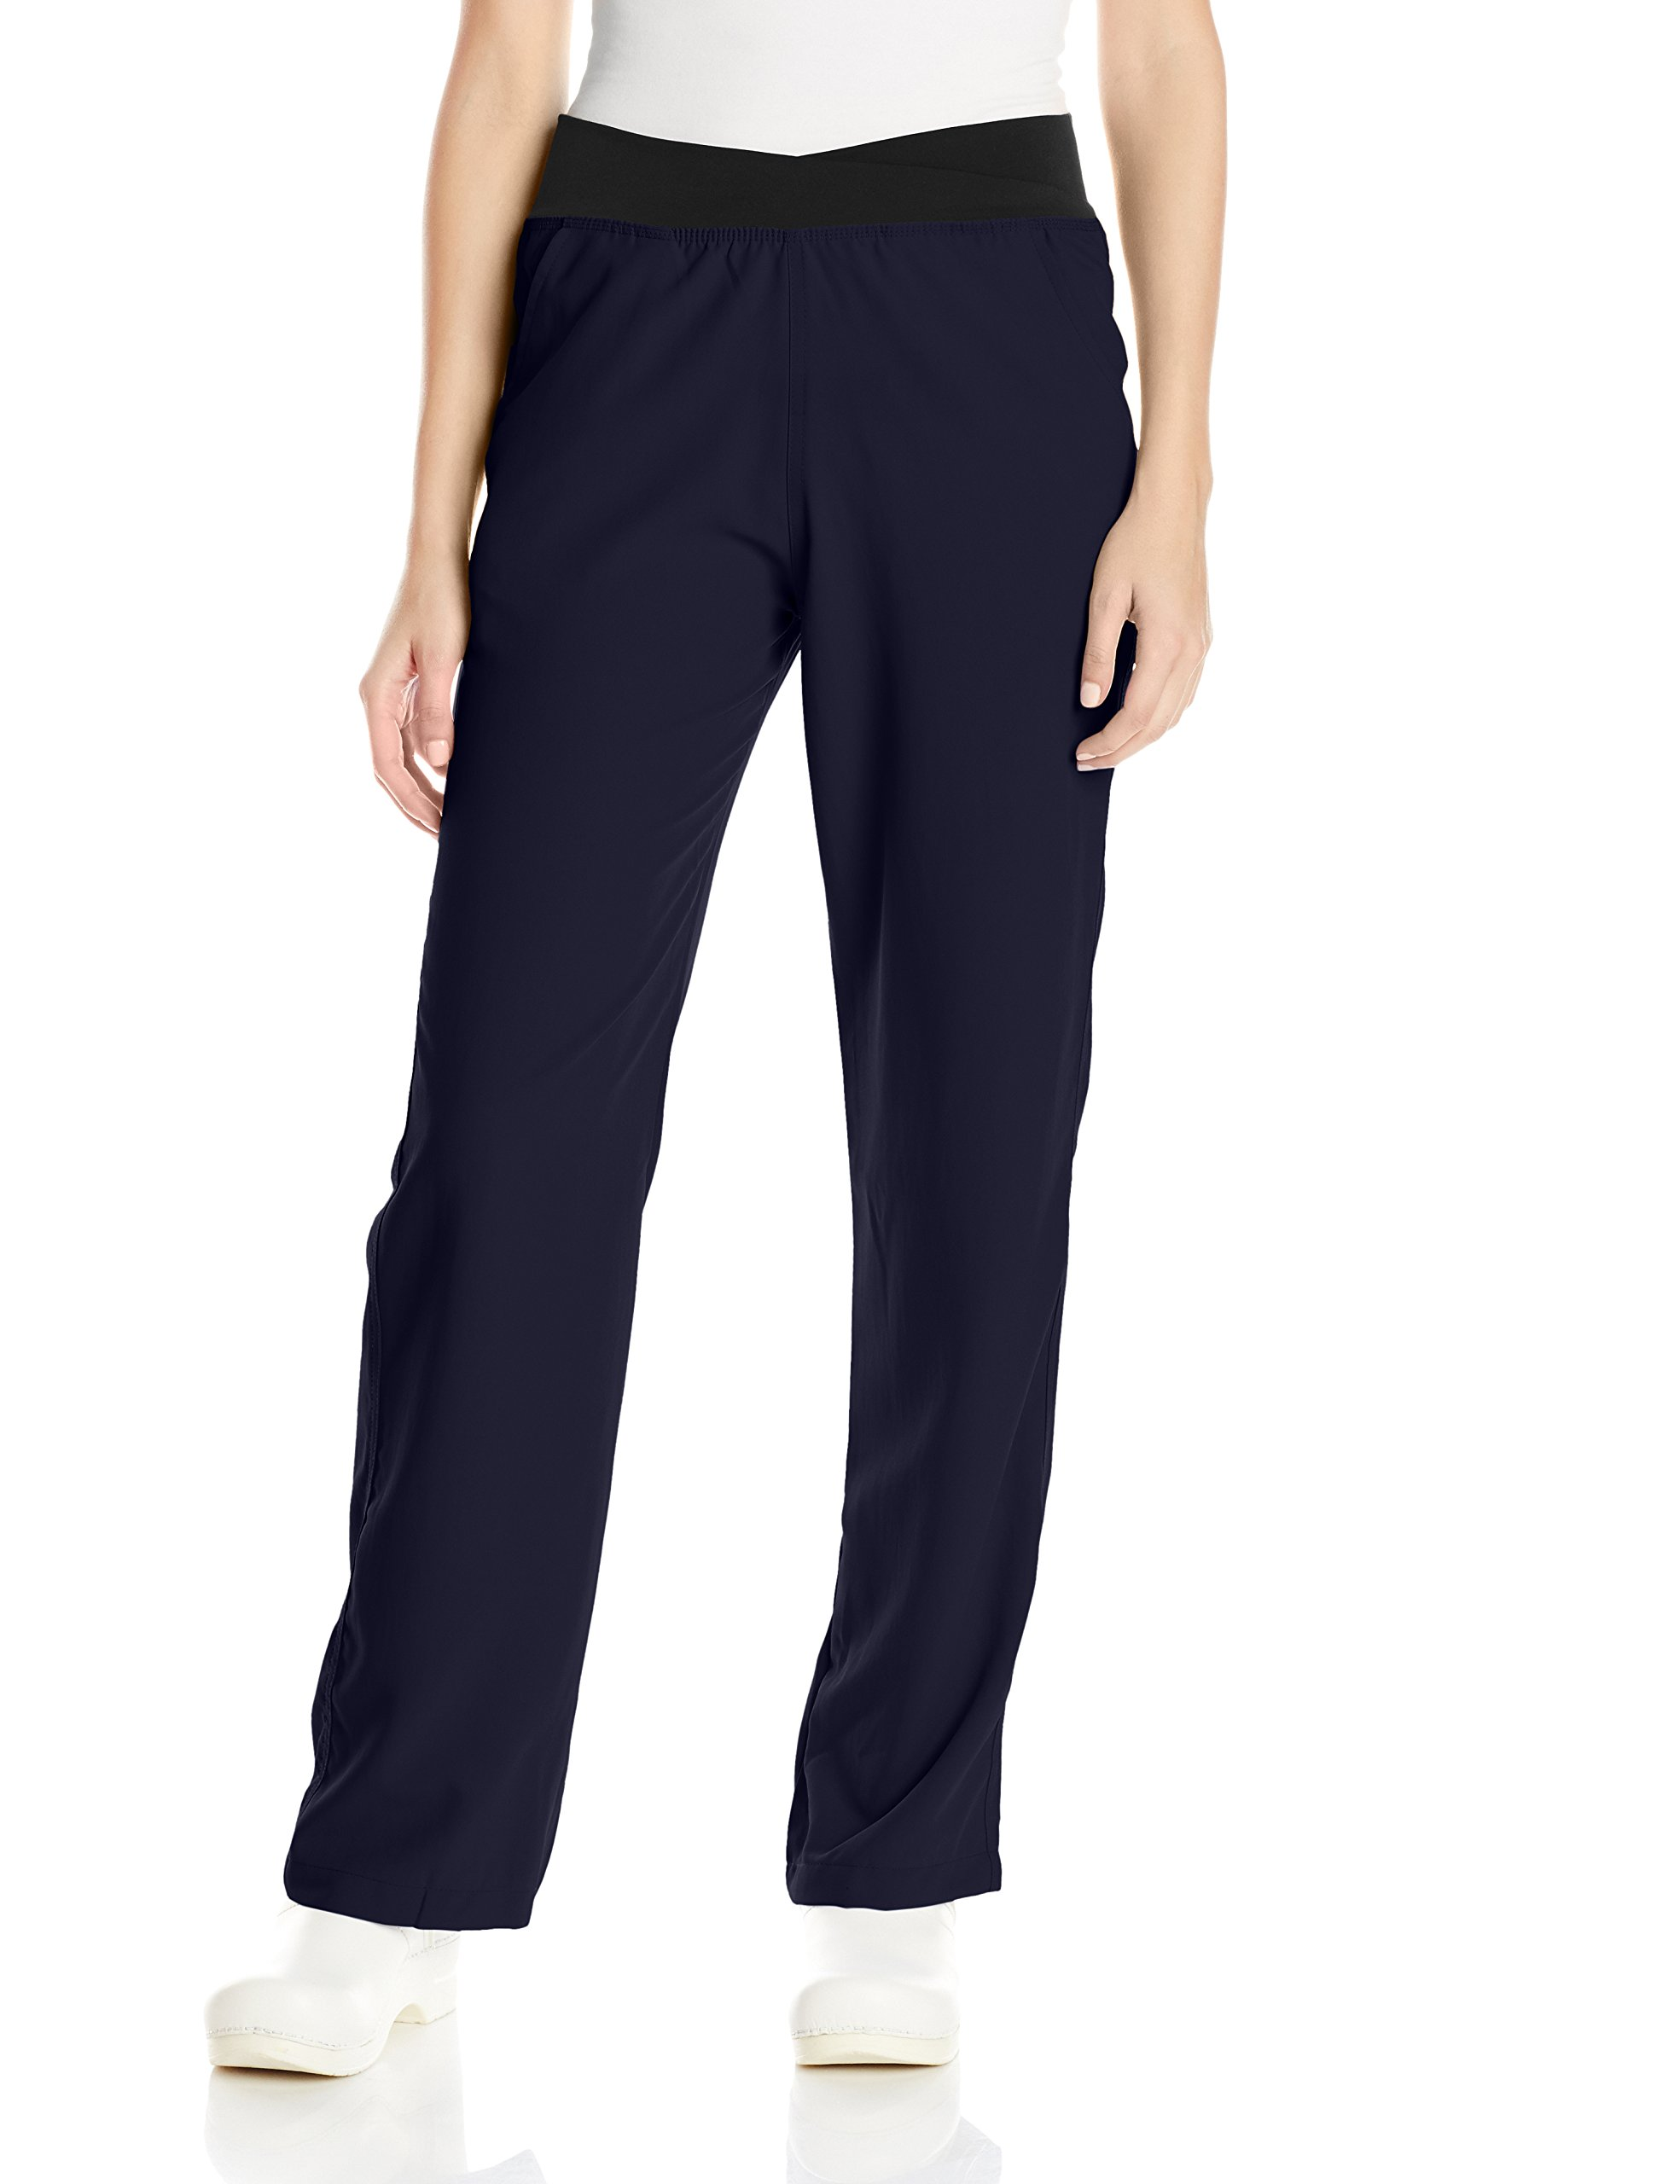 WonderWink Women's Easy Fit Knit Waist Scrub Pant, Navy, Small/Petite